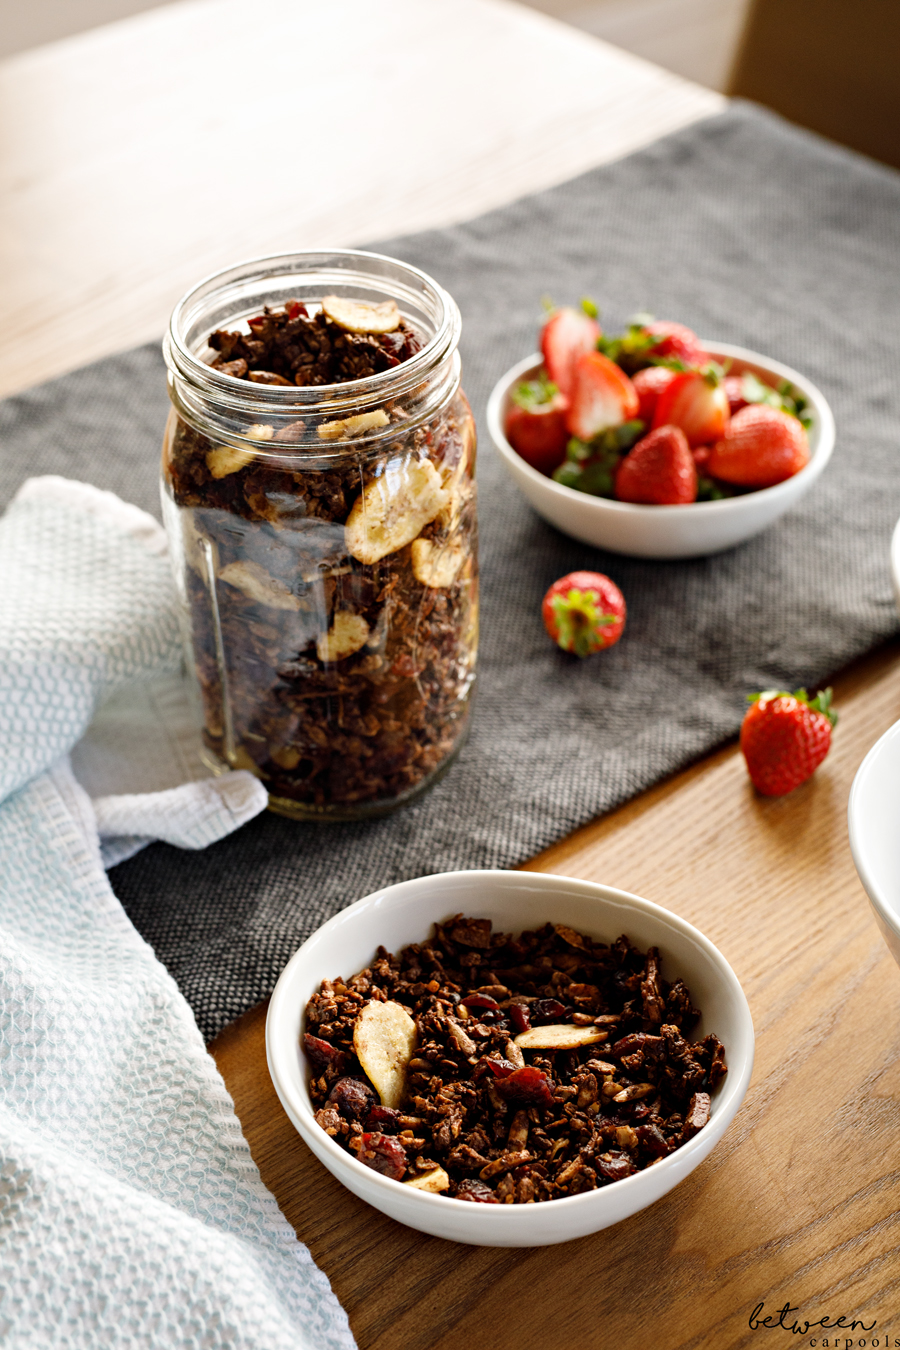 Chocolate Granola is Our New Favorite Breakfast Treat Enjoy it as a cereal with milk, or as an add-in to your yogurt. This is one granola that appeals to those who like wholesome foods and those who like sweet things alike.